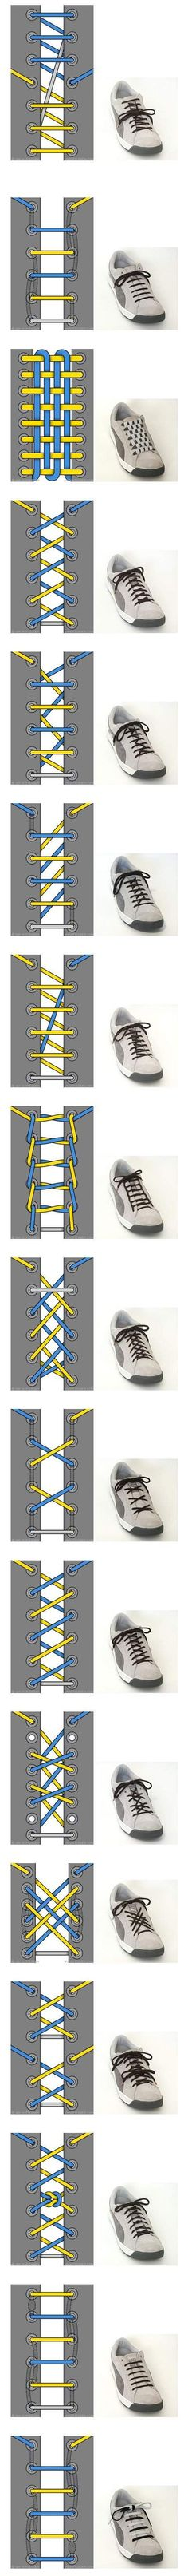 who would of thought there were so many ways to lace your shoes